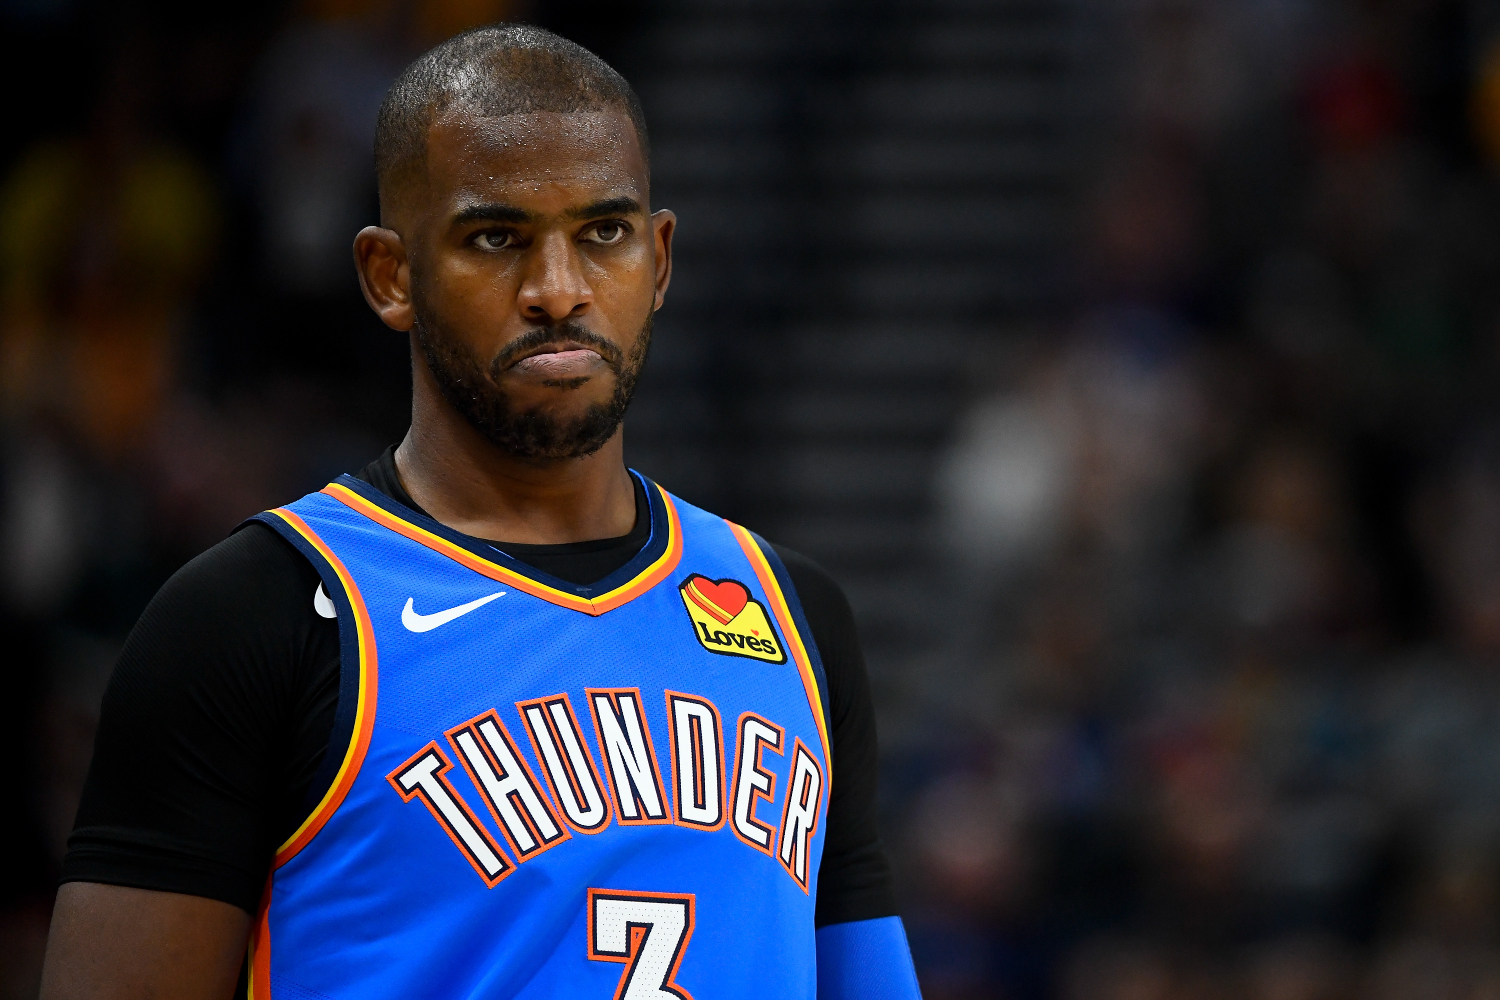 Chris Paul looks on during a Thunder game